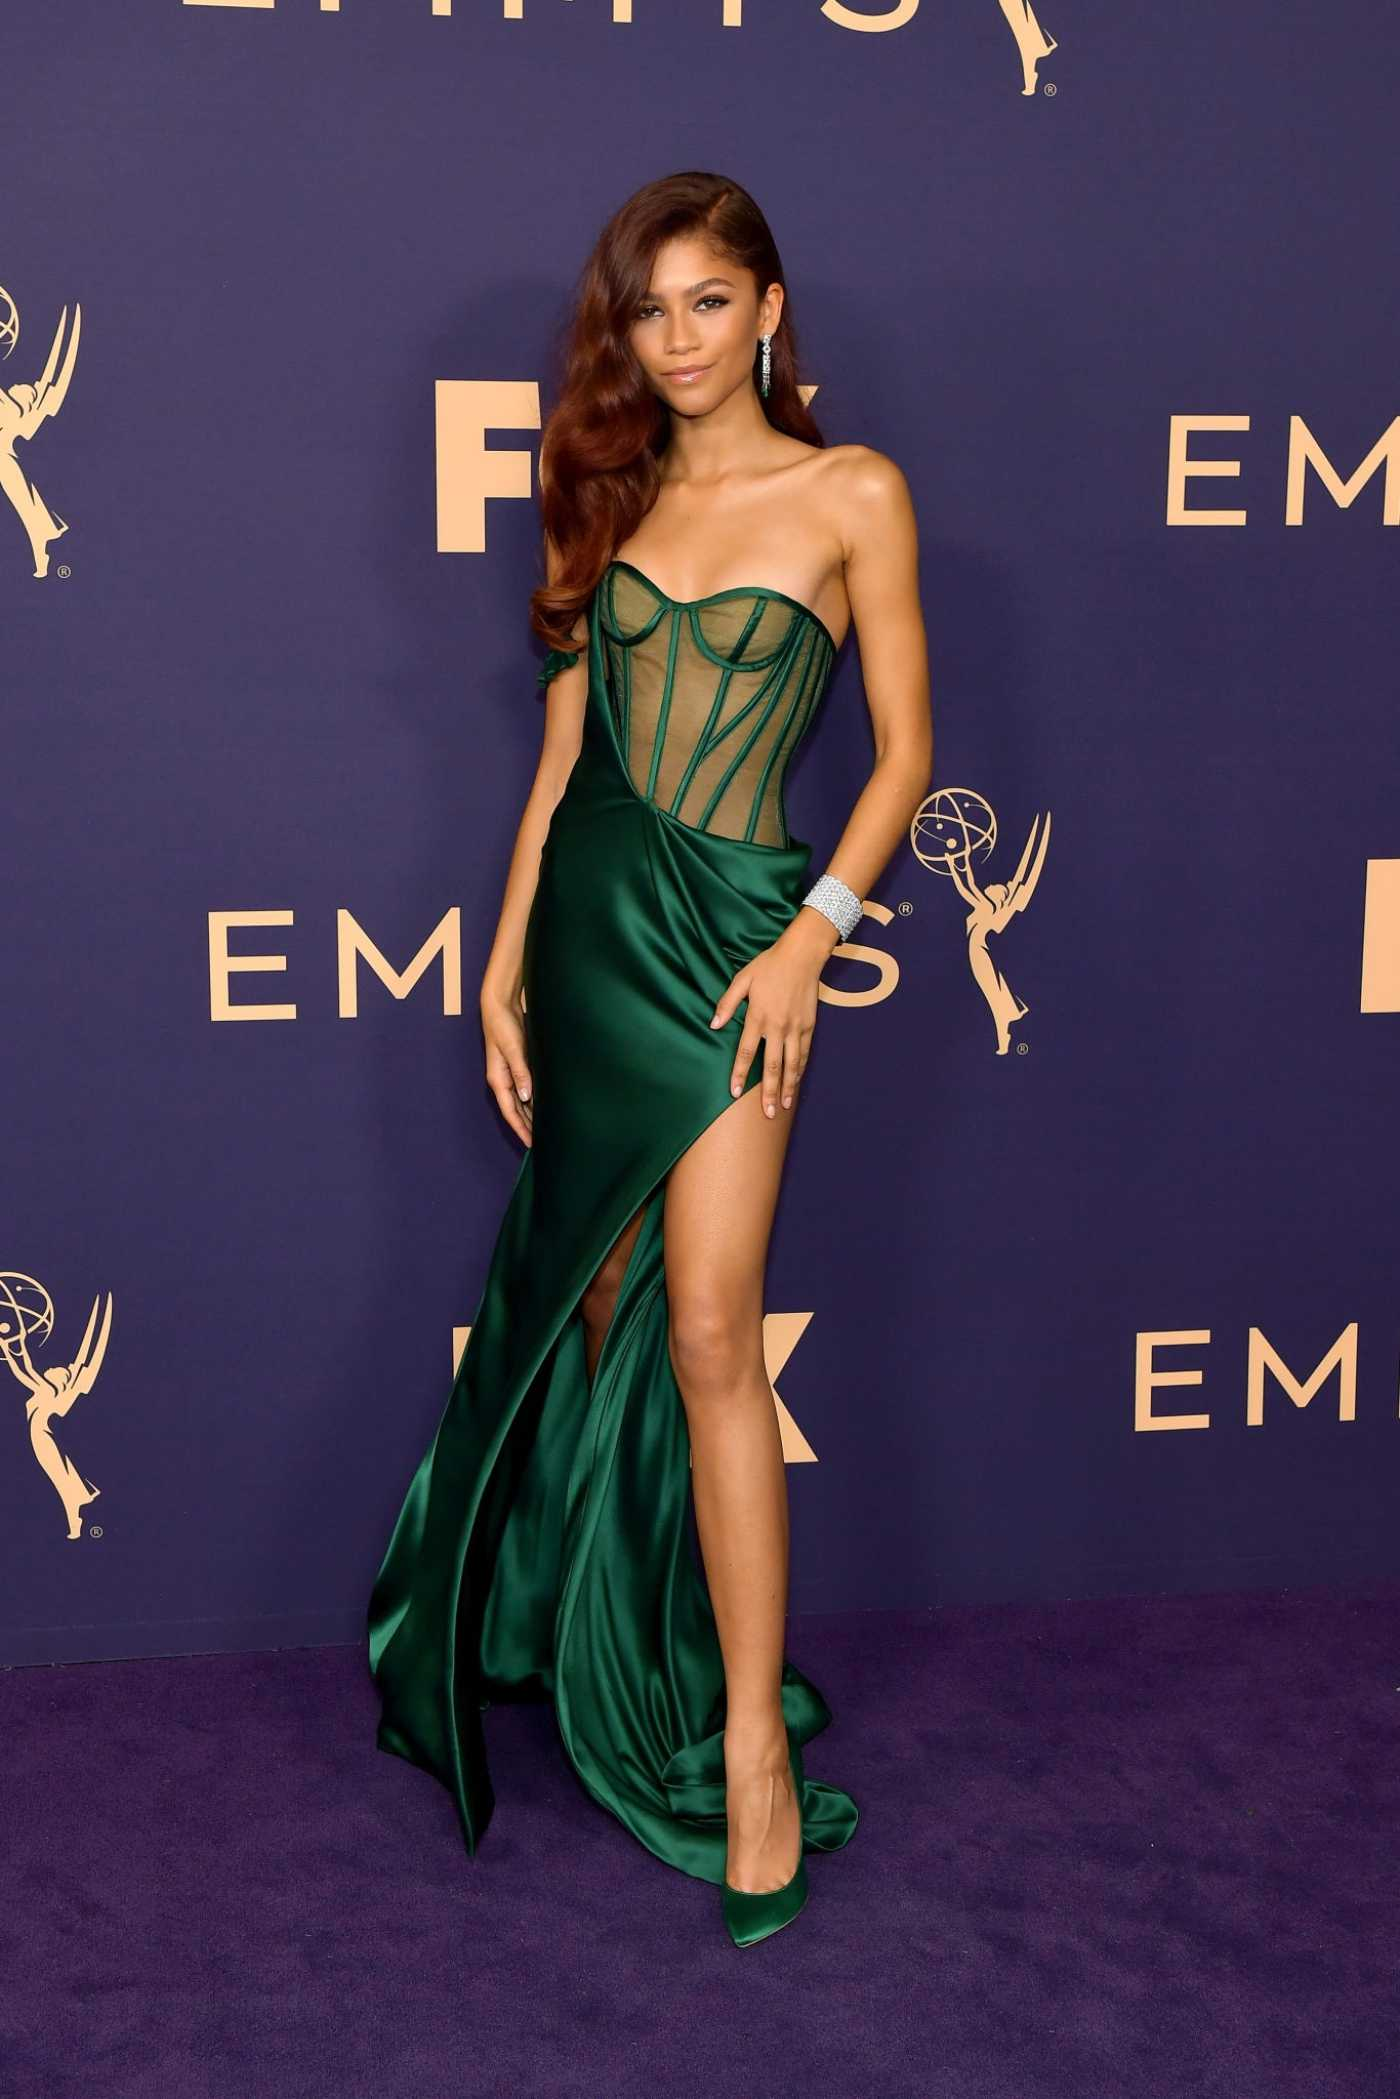 Zendaya Attends the 71st Emmy Awards at Microsoft Theater in Los Angeles 09/22/2019